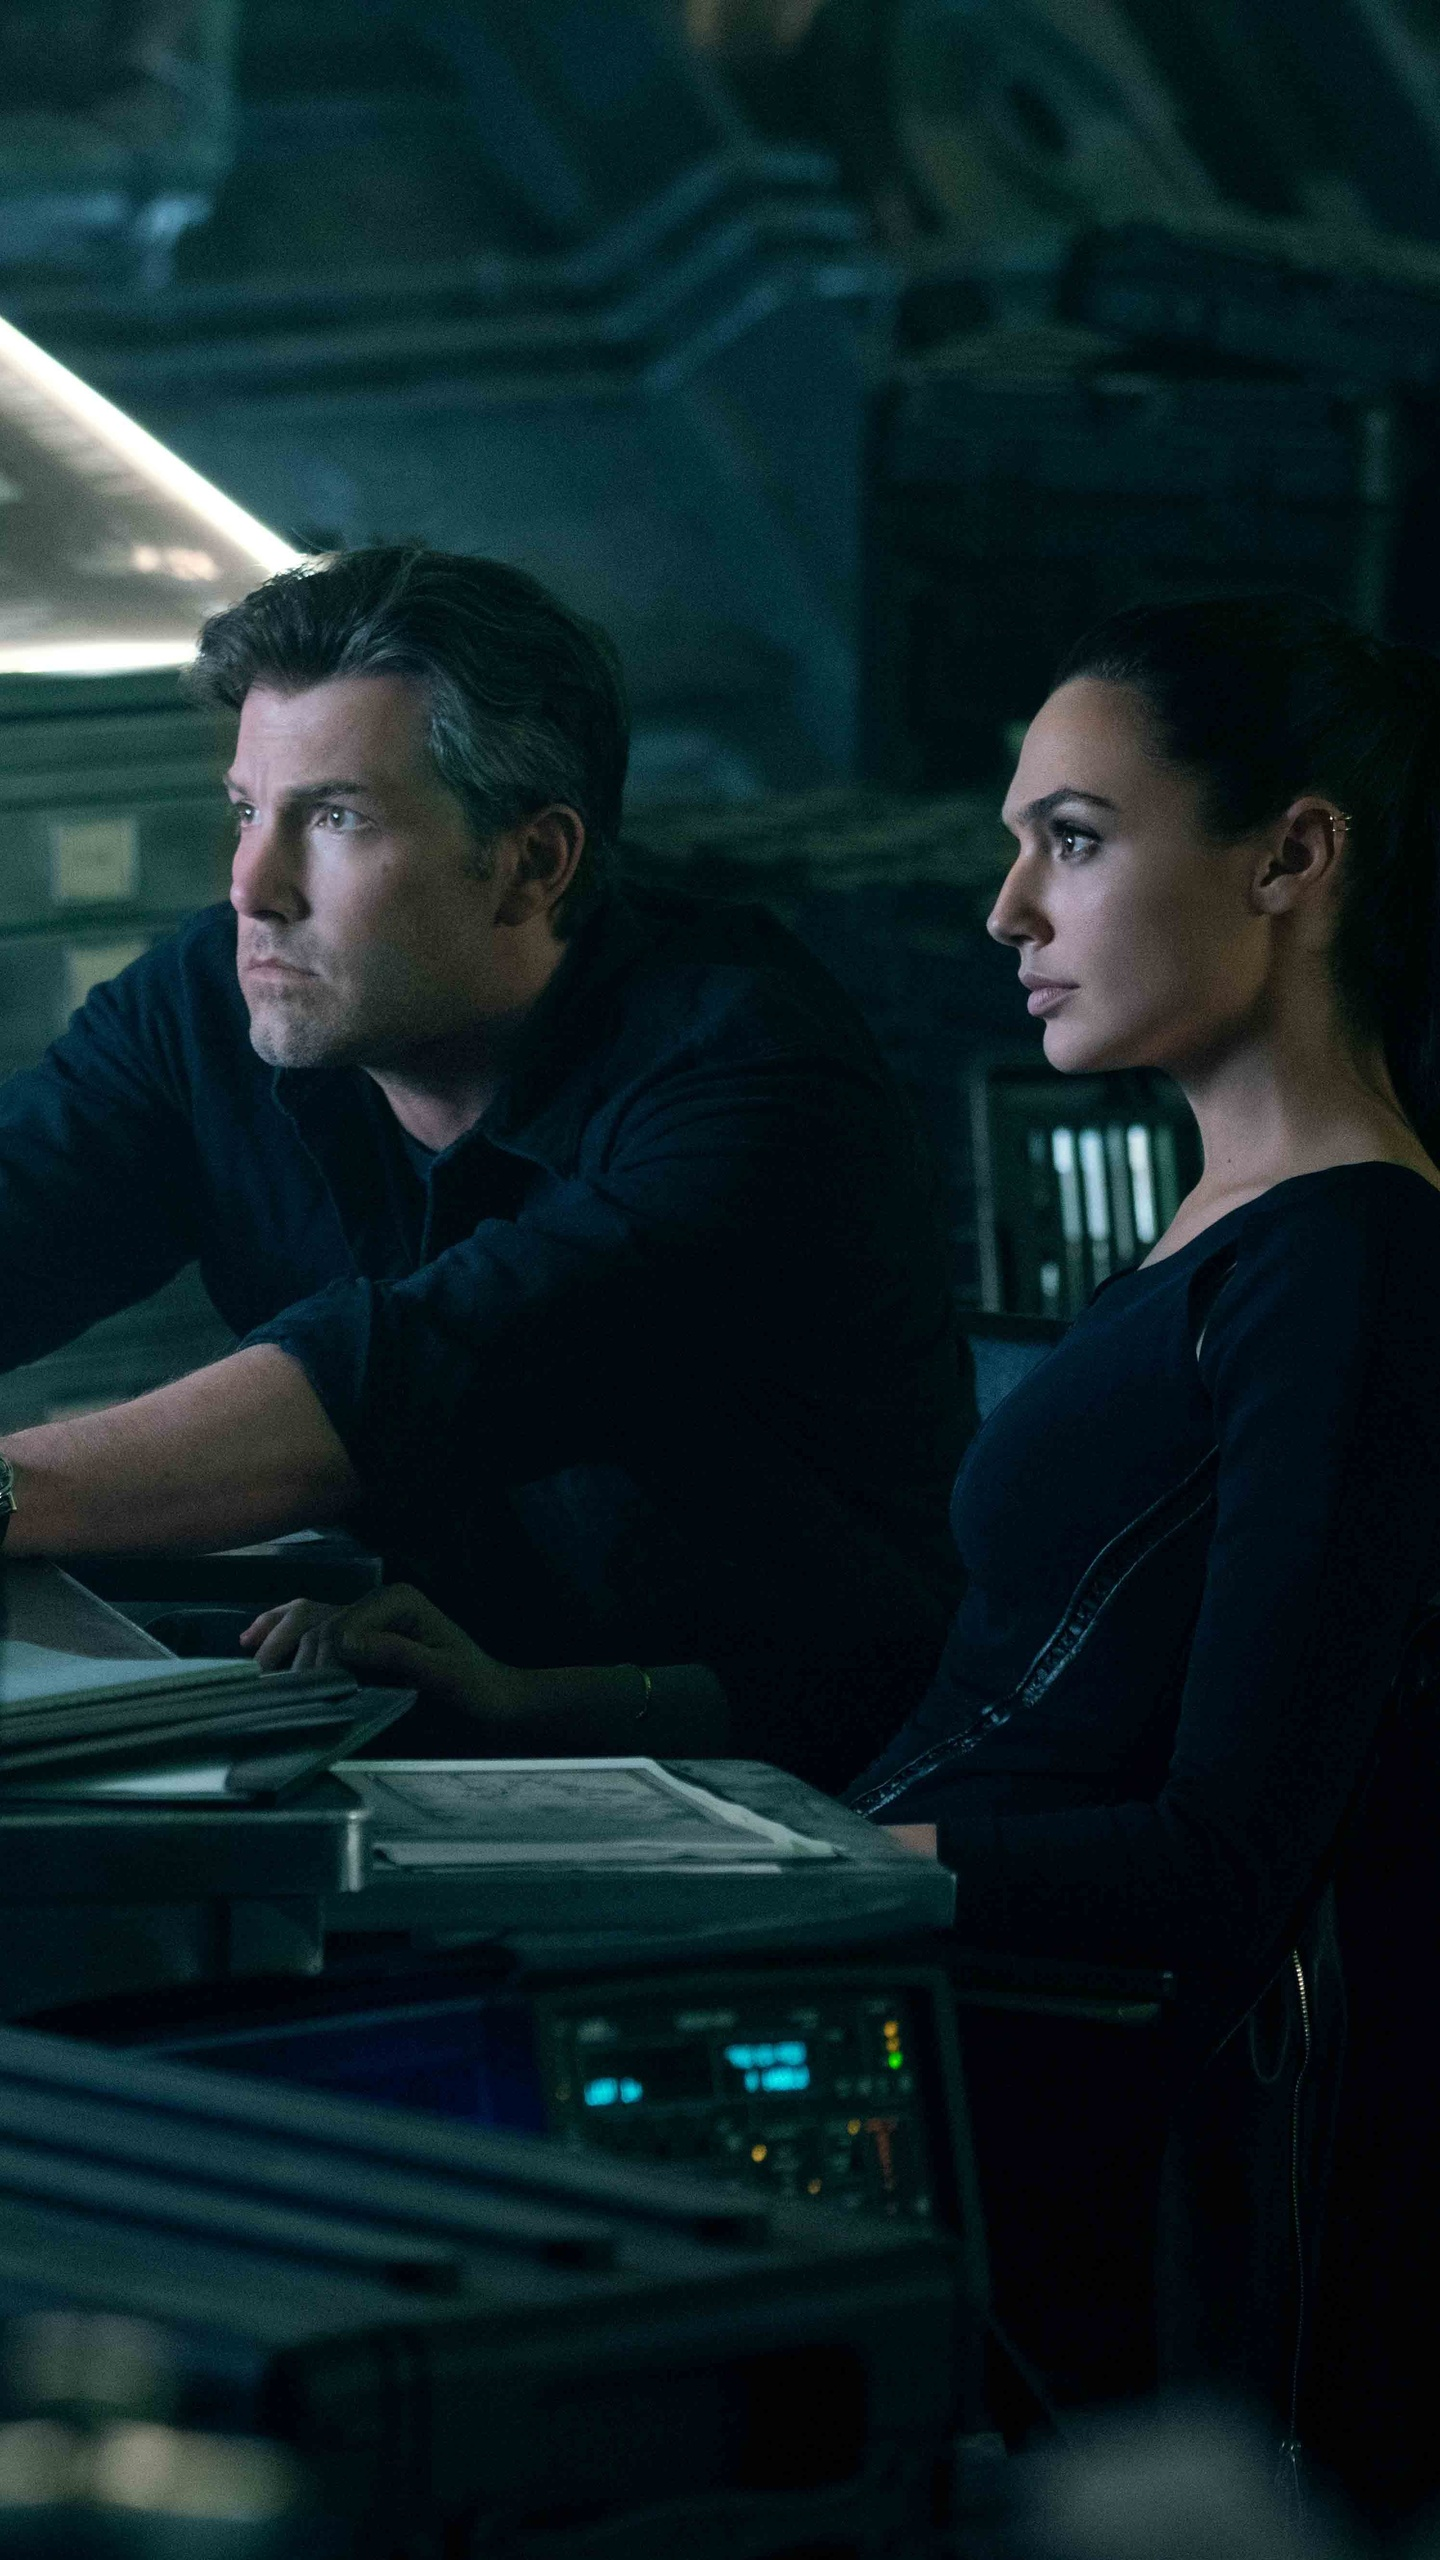 ben-affleck-and-gal-gadot-in-justice-league-wh.jpg